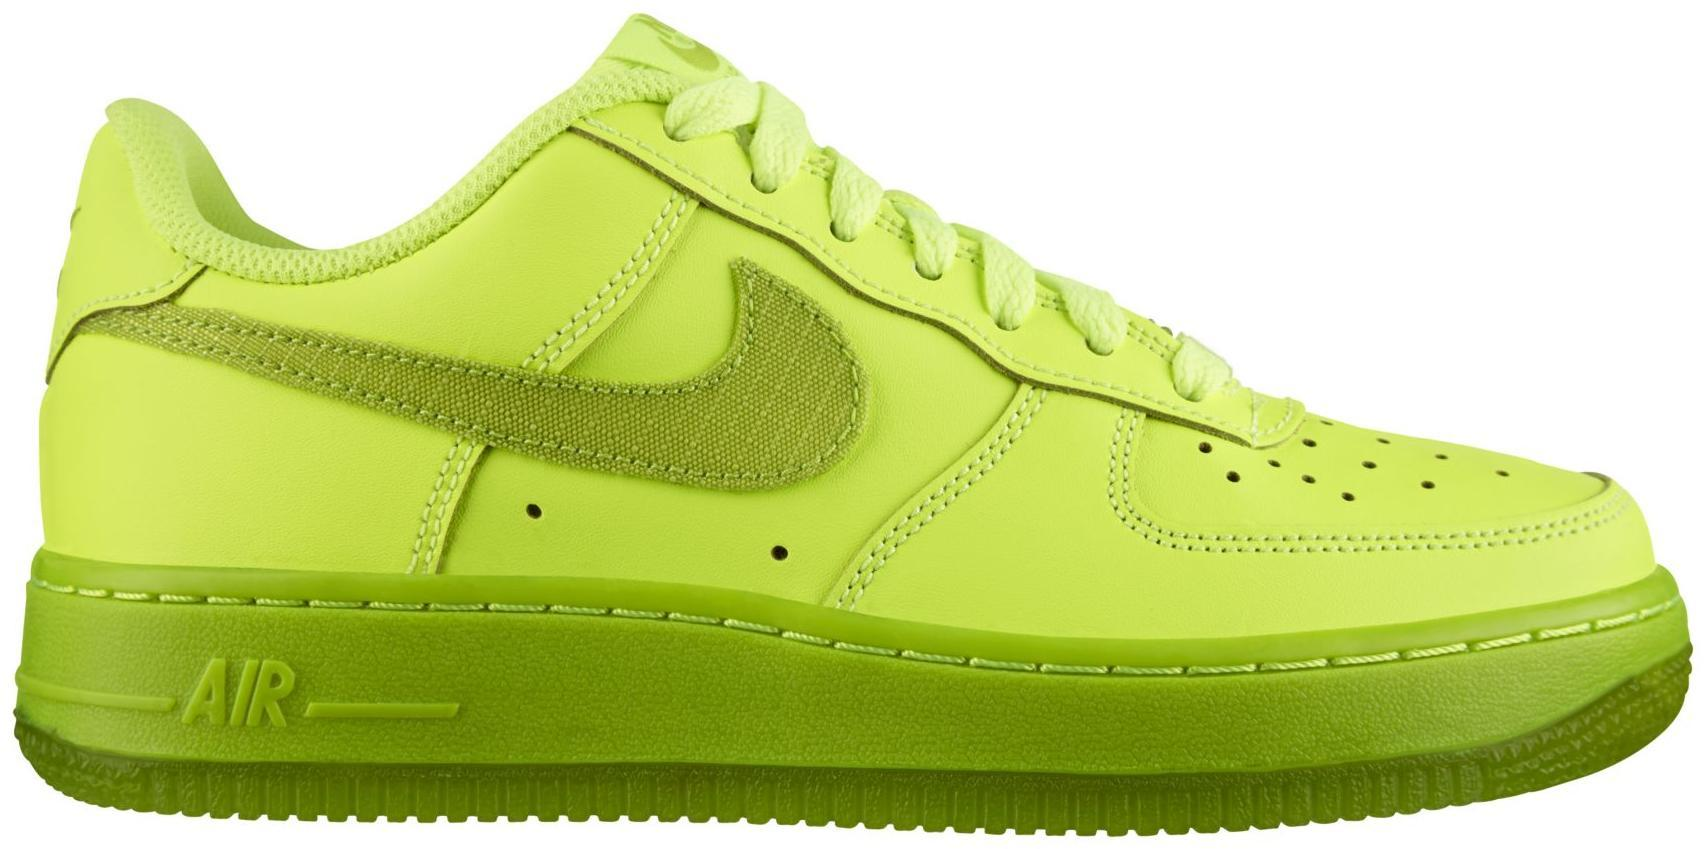 Air Force 1 Low Volt Fierce Green GS